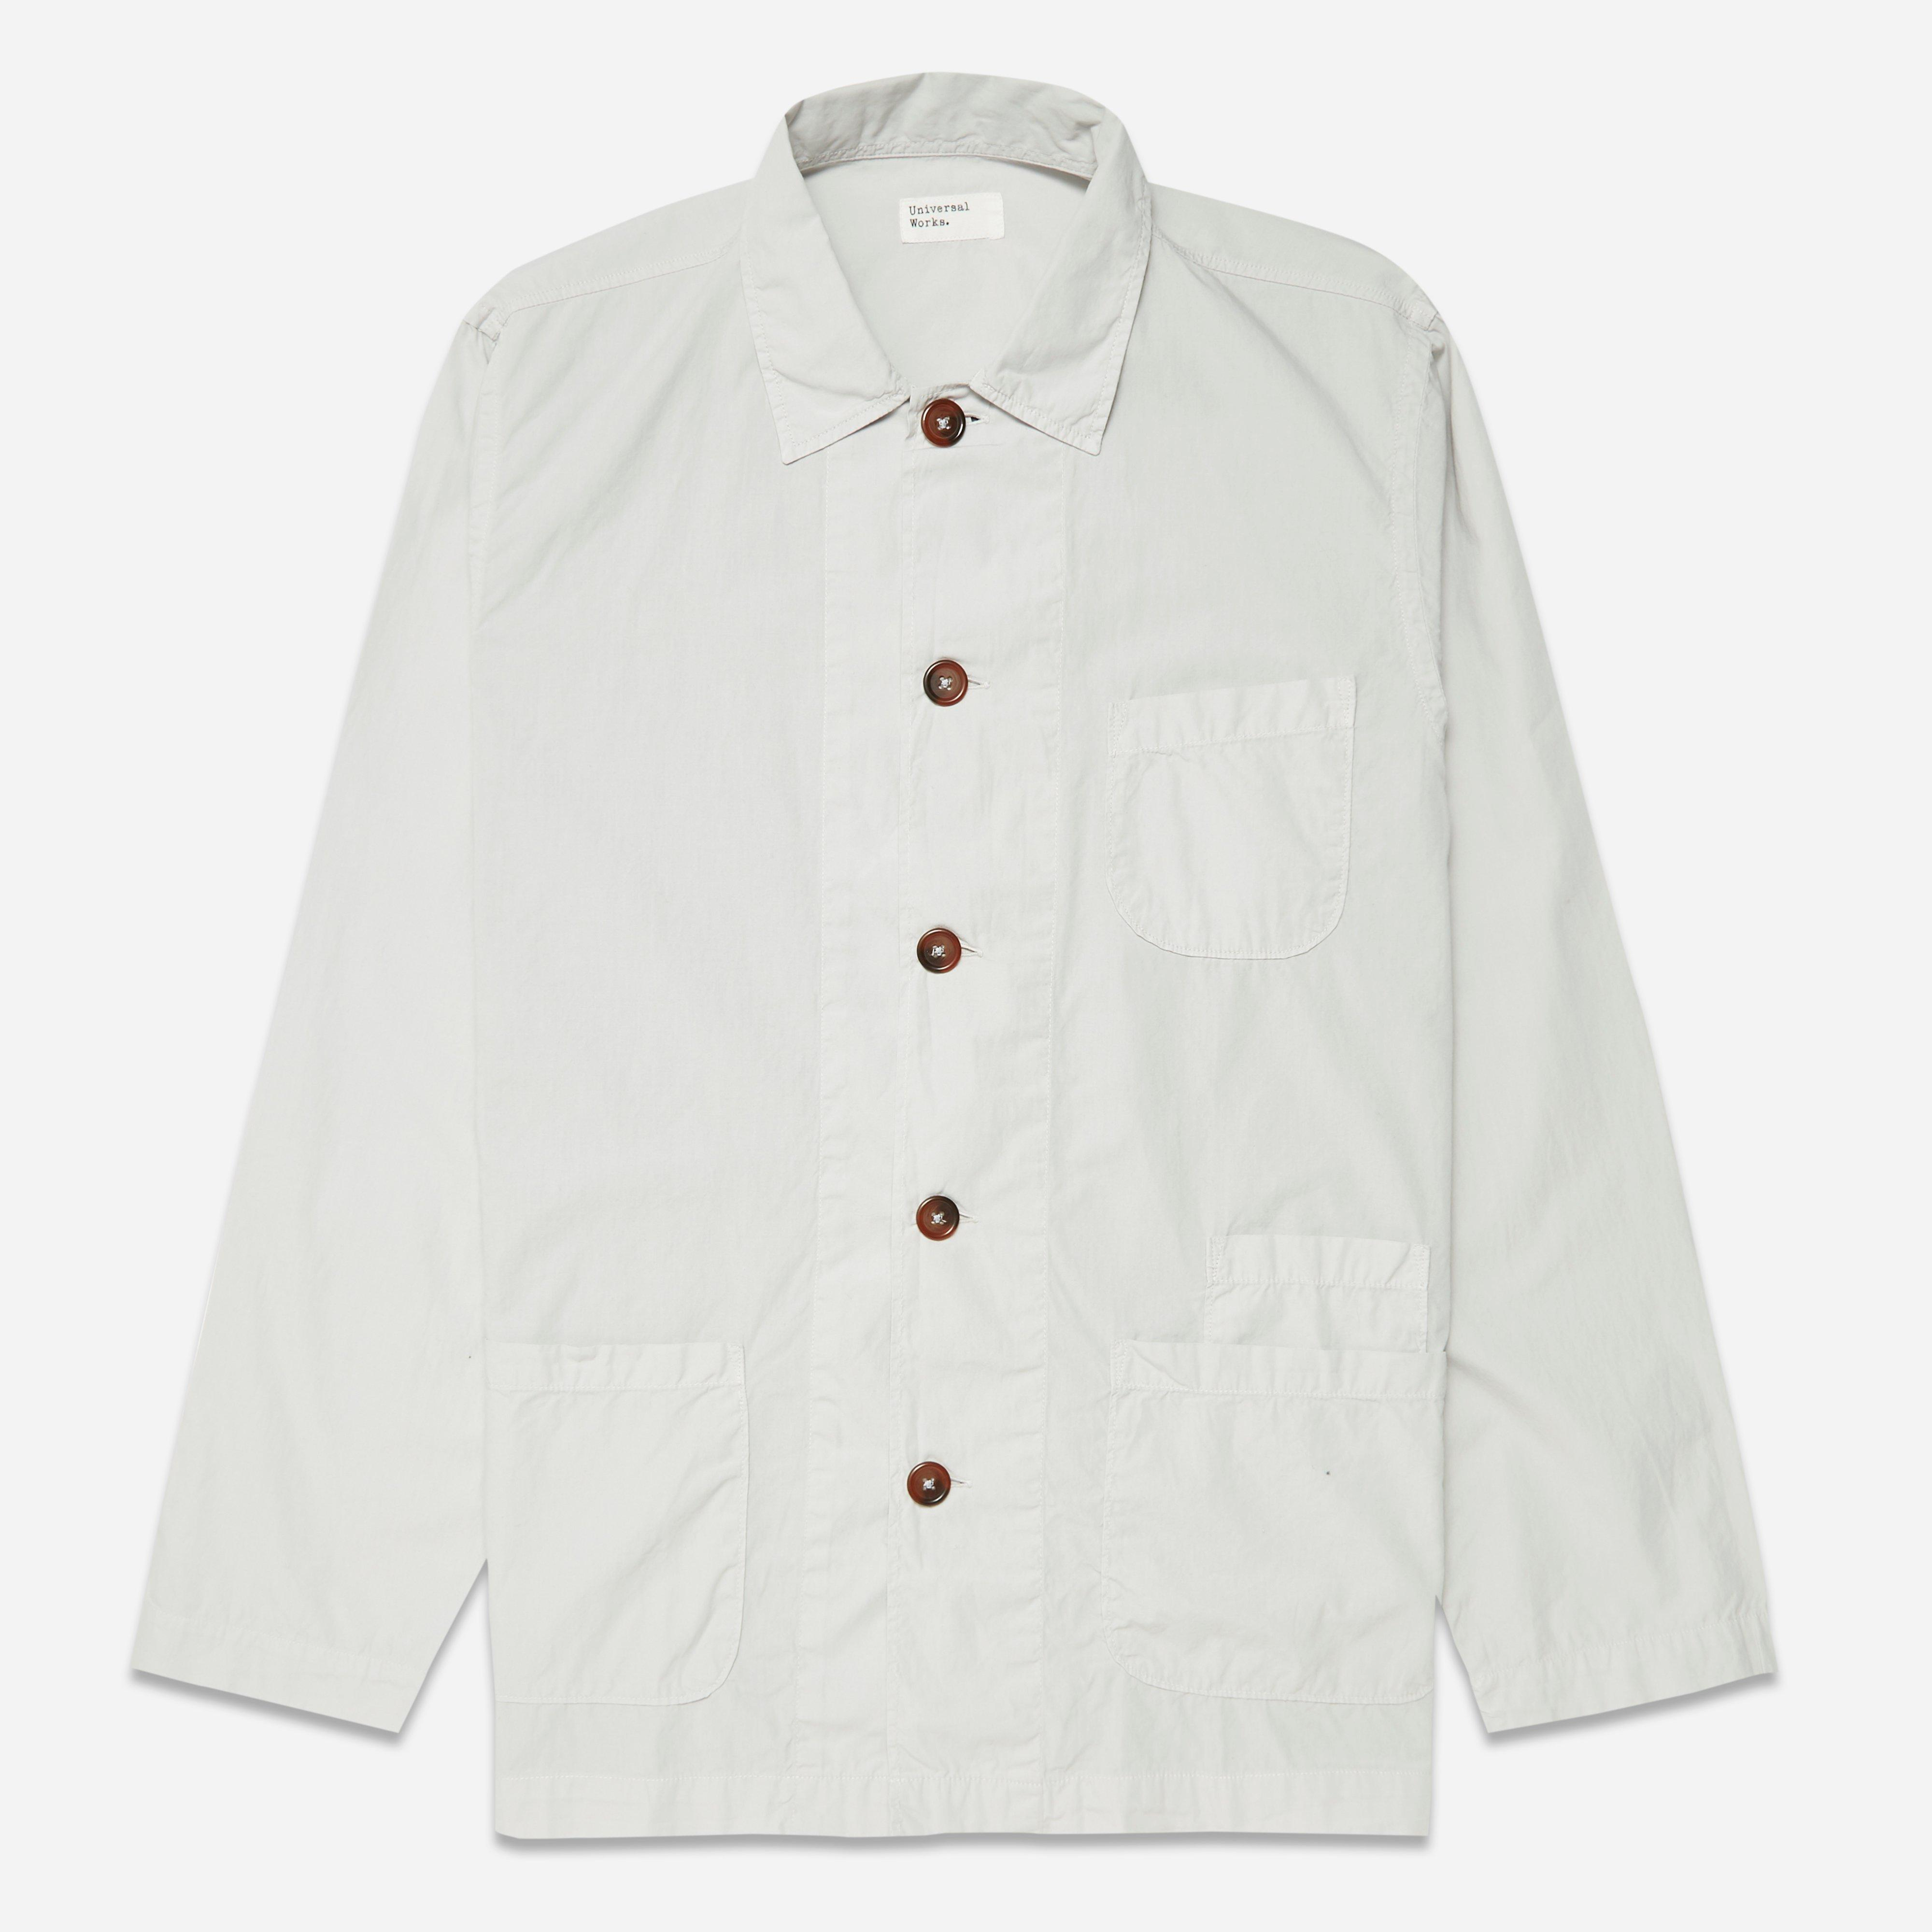 Universal Works Poplin Bakers Overshirt